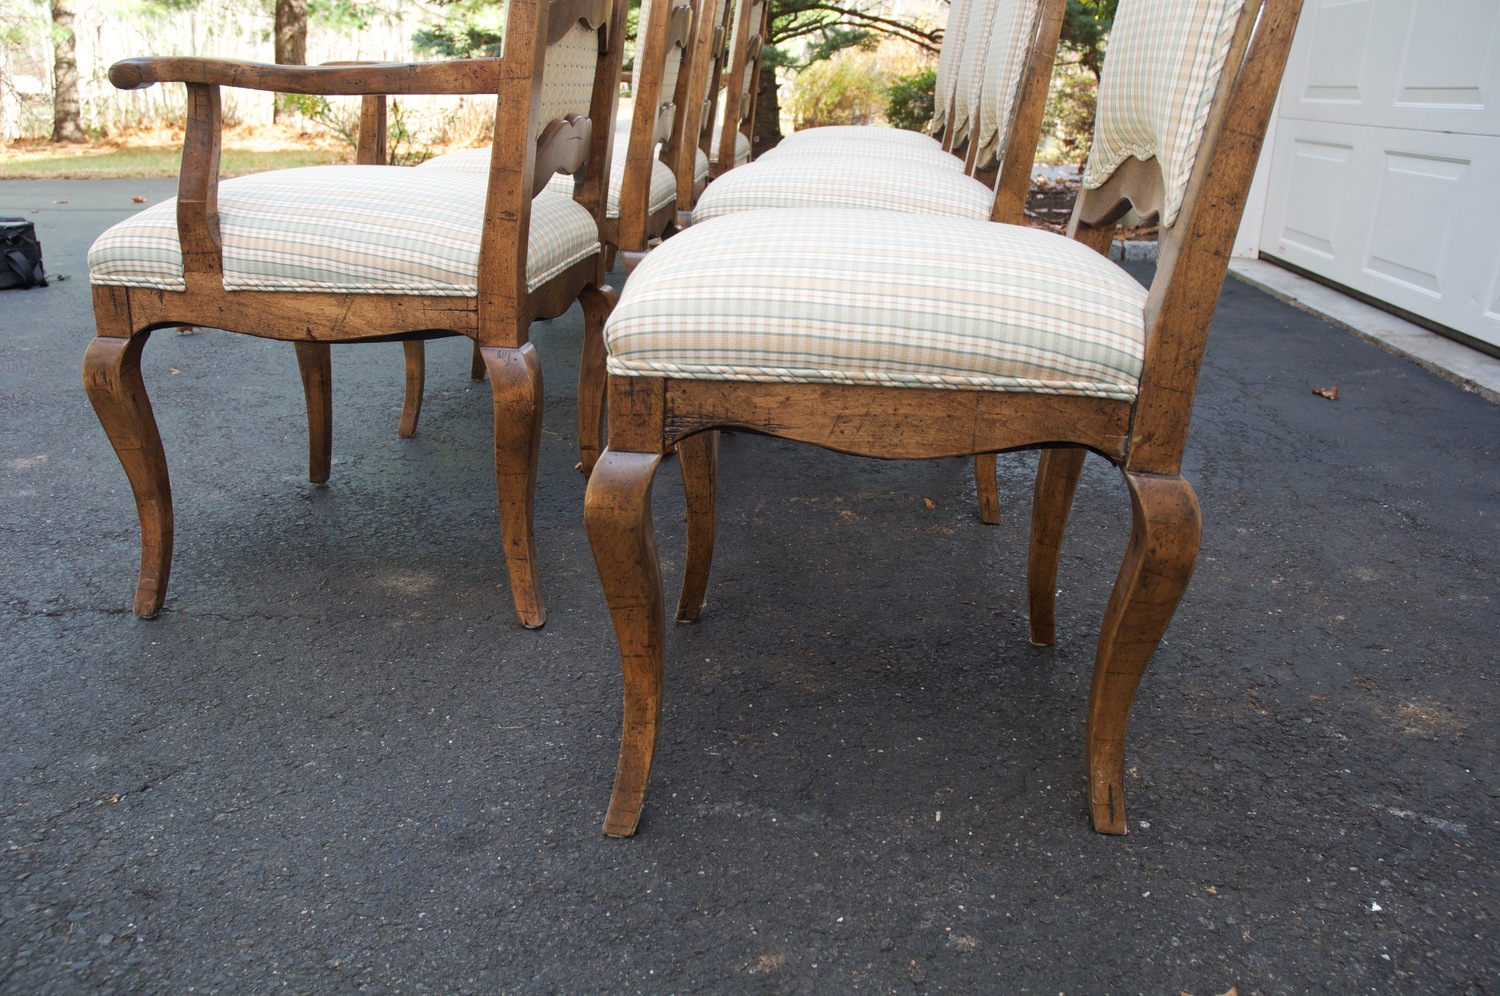 Upscale Resale CT — Set of 8 French Country Upholstered Ladderback ...